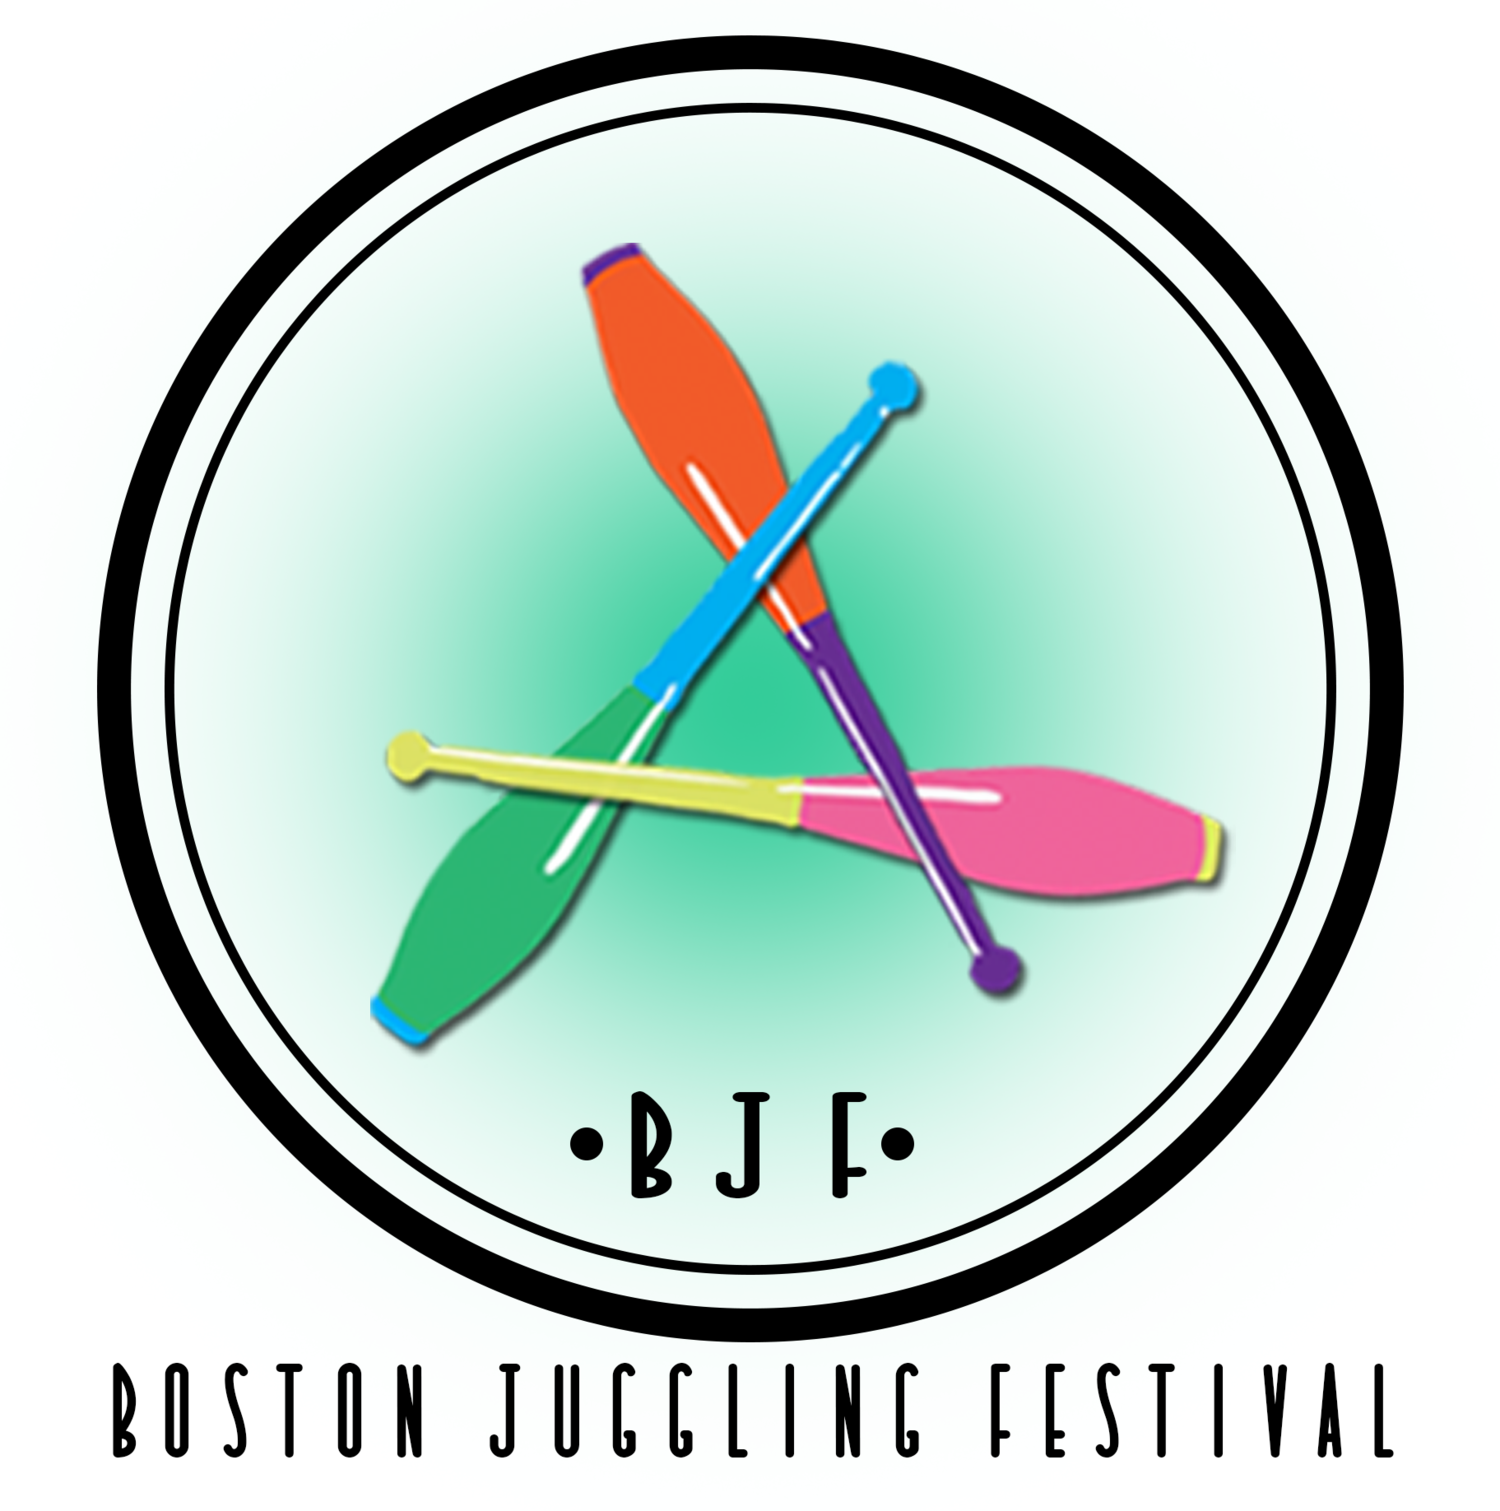 Boston Juggling